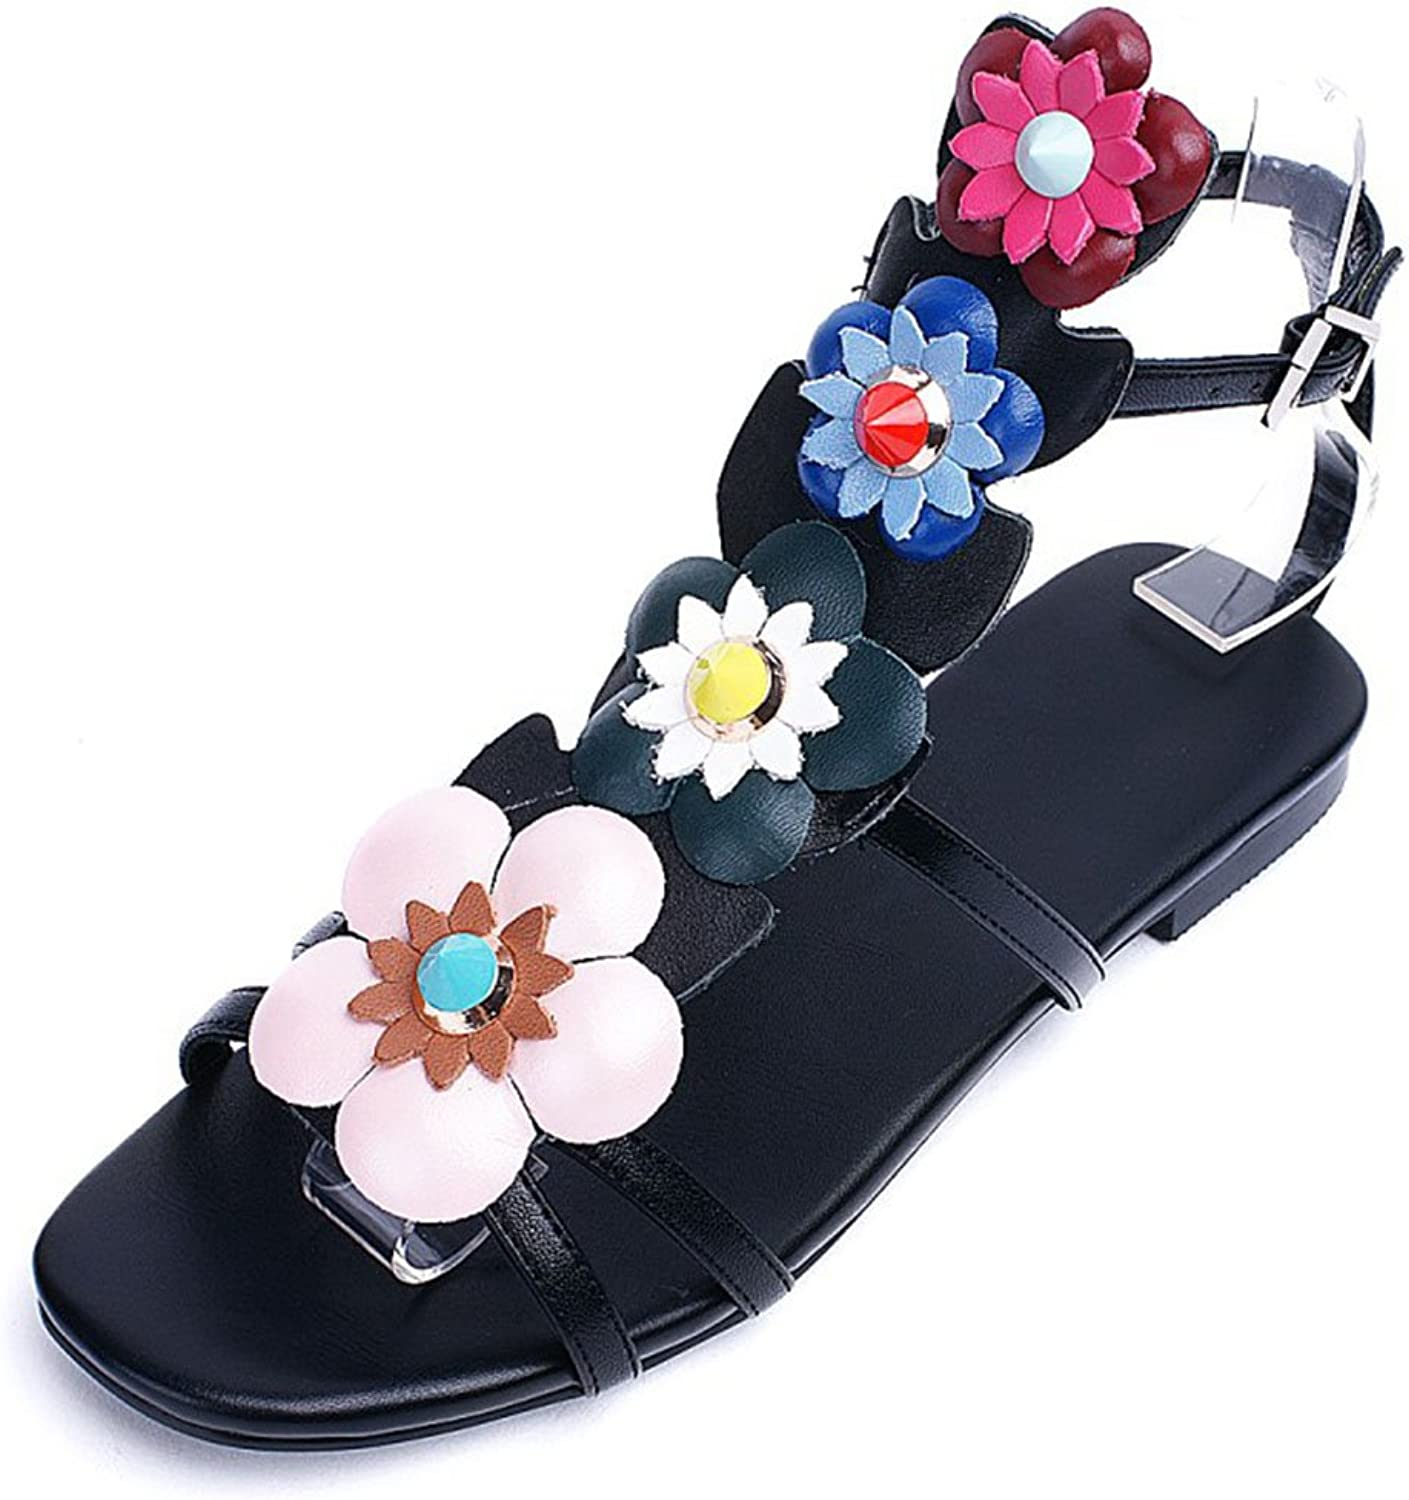 Women's Sandals Peep Toe Fashion Flowers Black Leather Pump Court shoes Ankle Evening Party High Heels